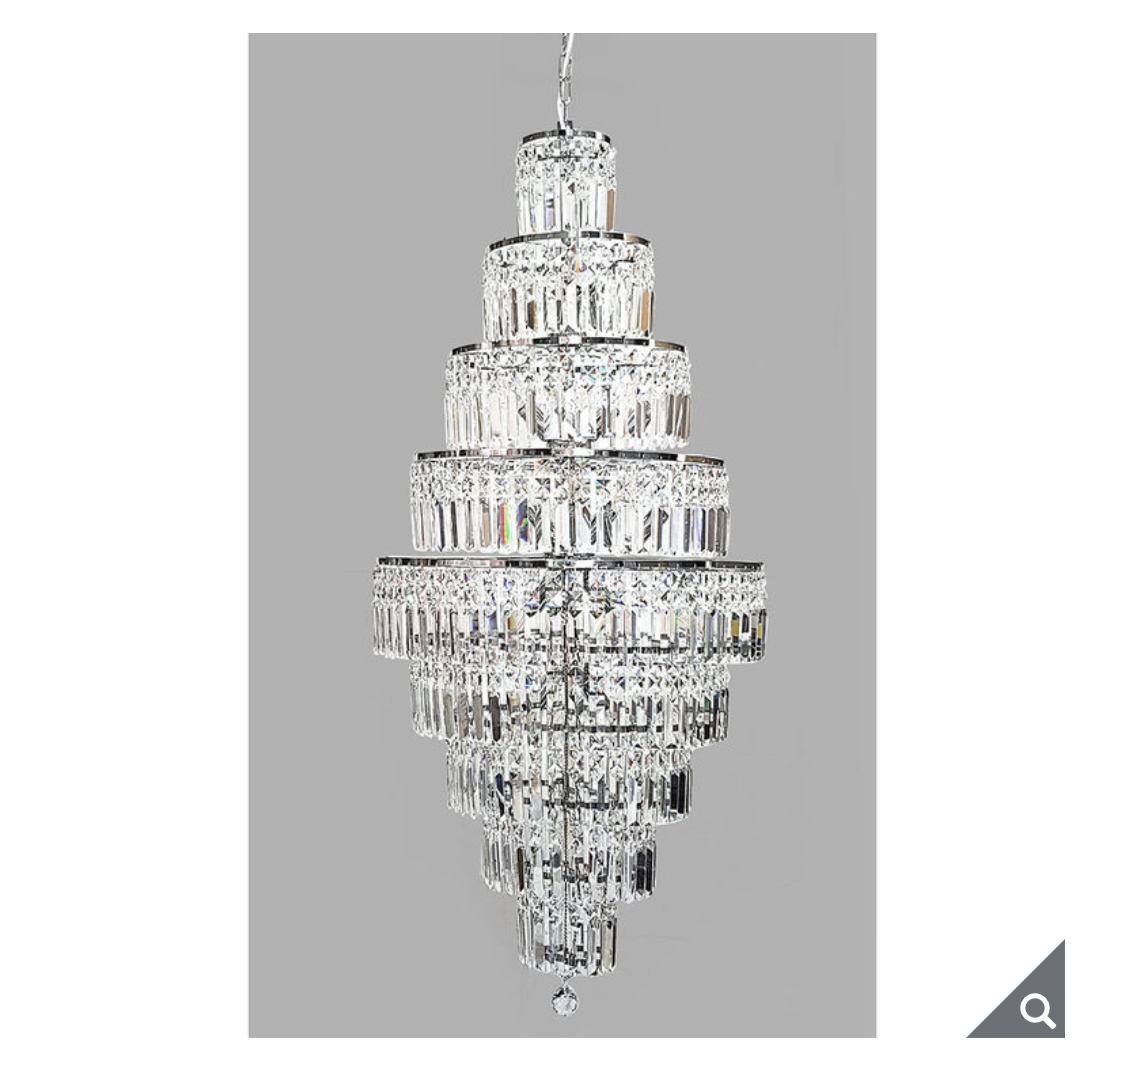 Swarovski Crystal Empire 13 Light Chandelier in Chrome